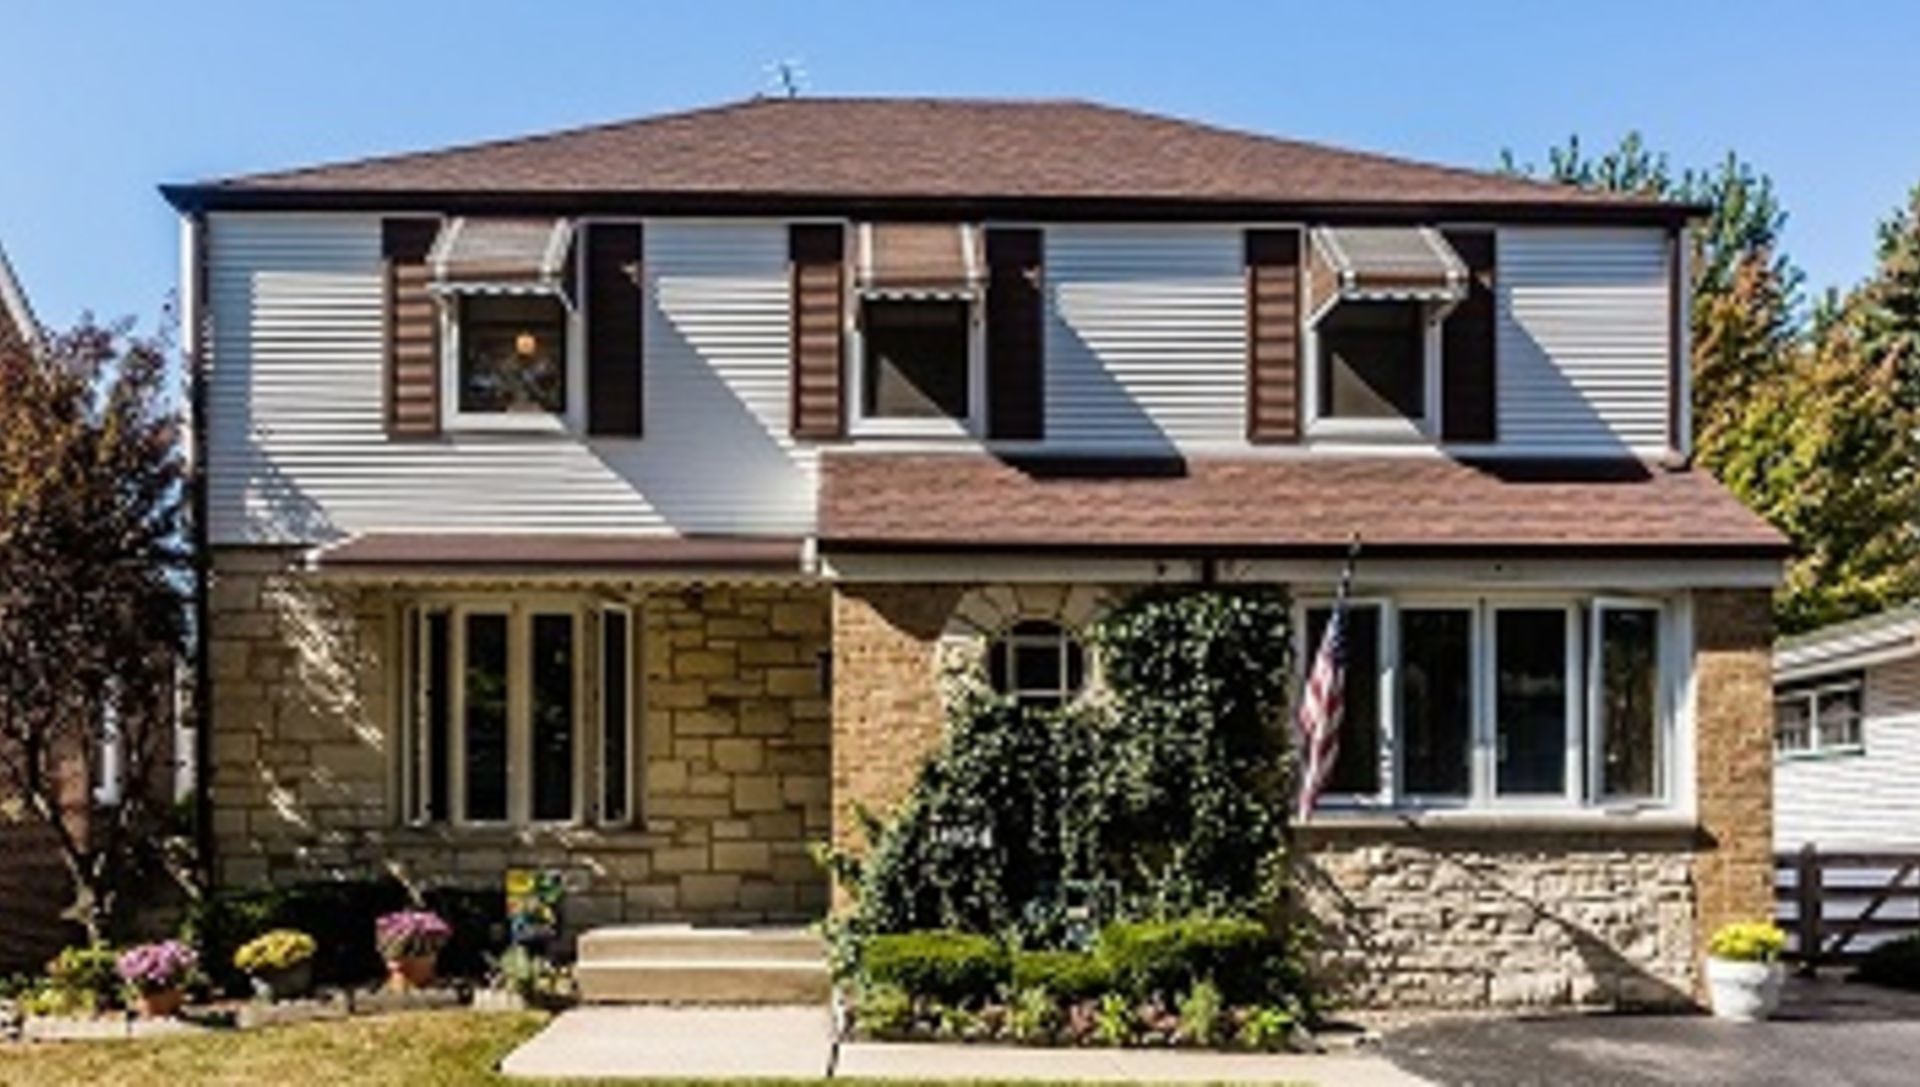 Open House, Sunday, October 15, 2017, 1604 S Fairview, Park Ridge IL, 1-3 PM